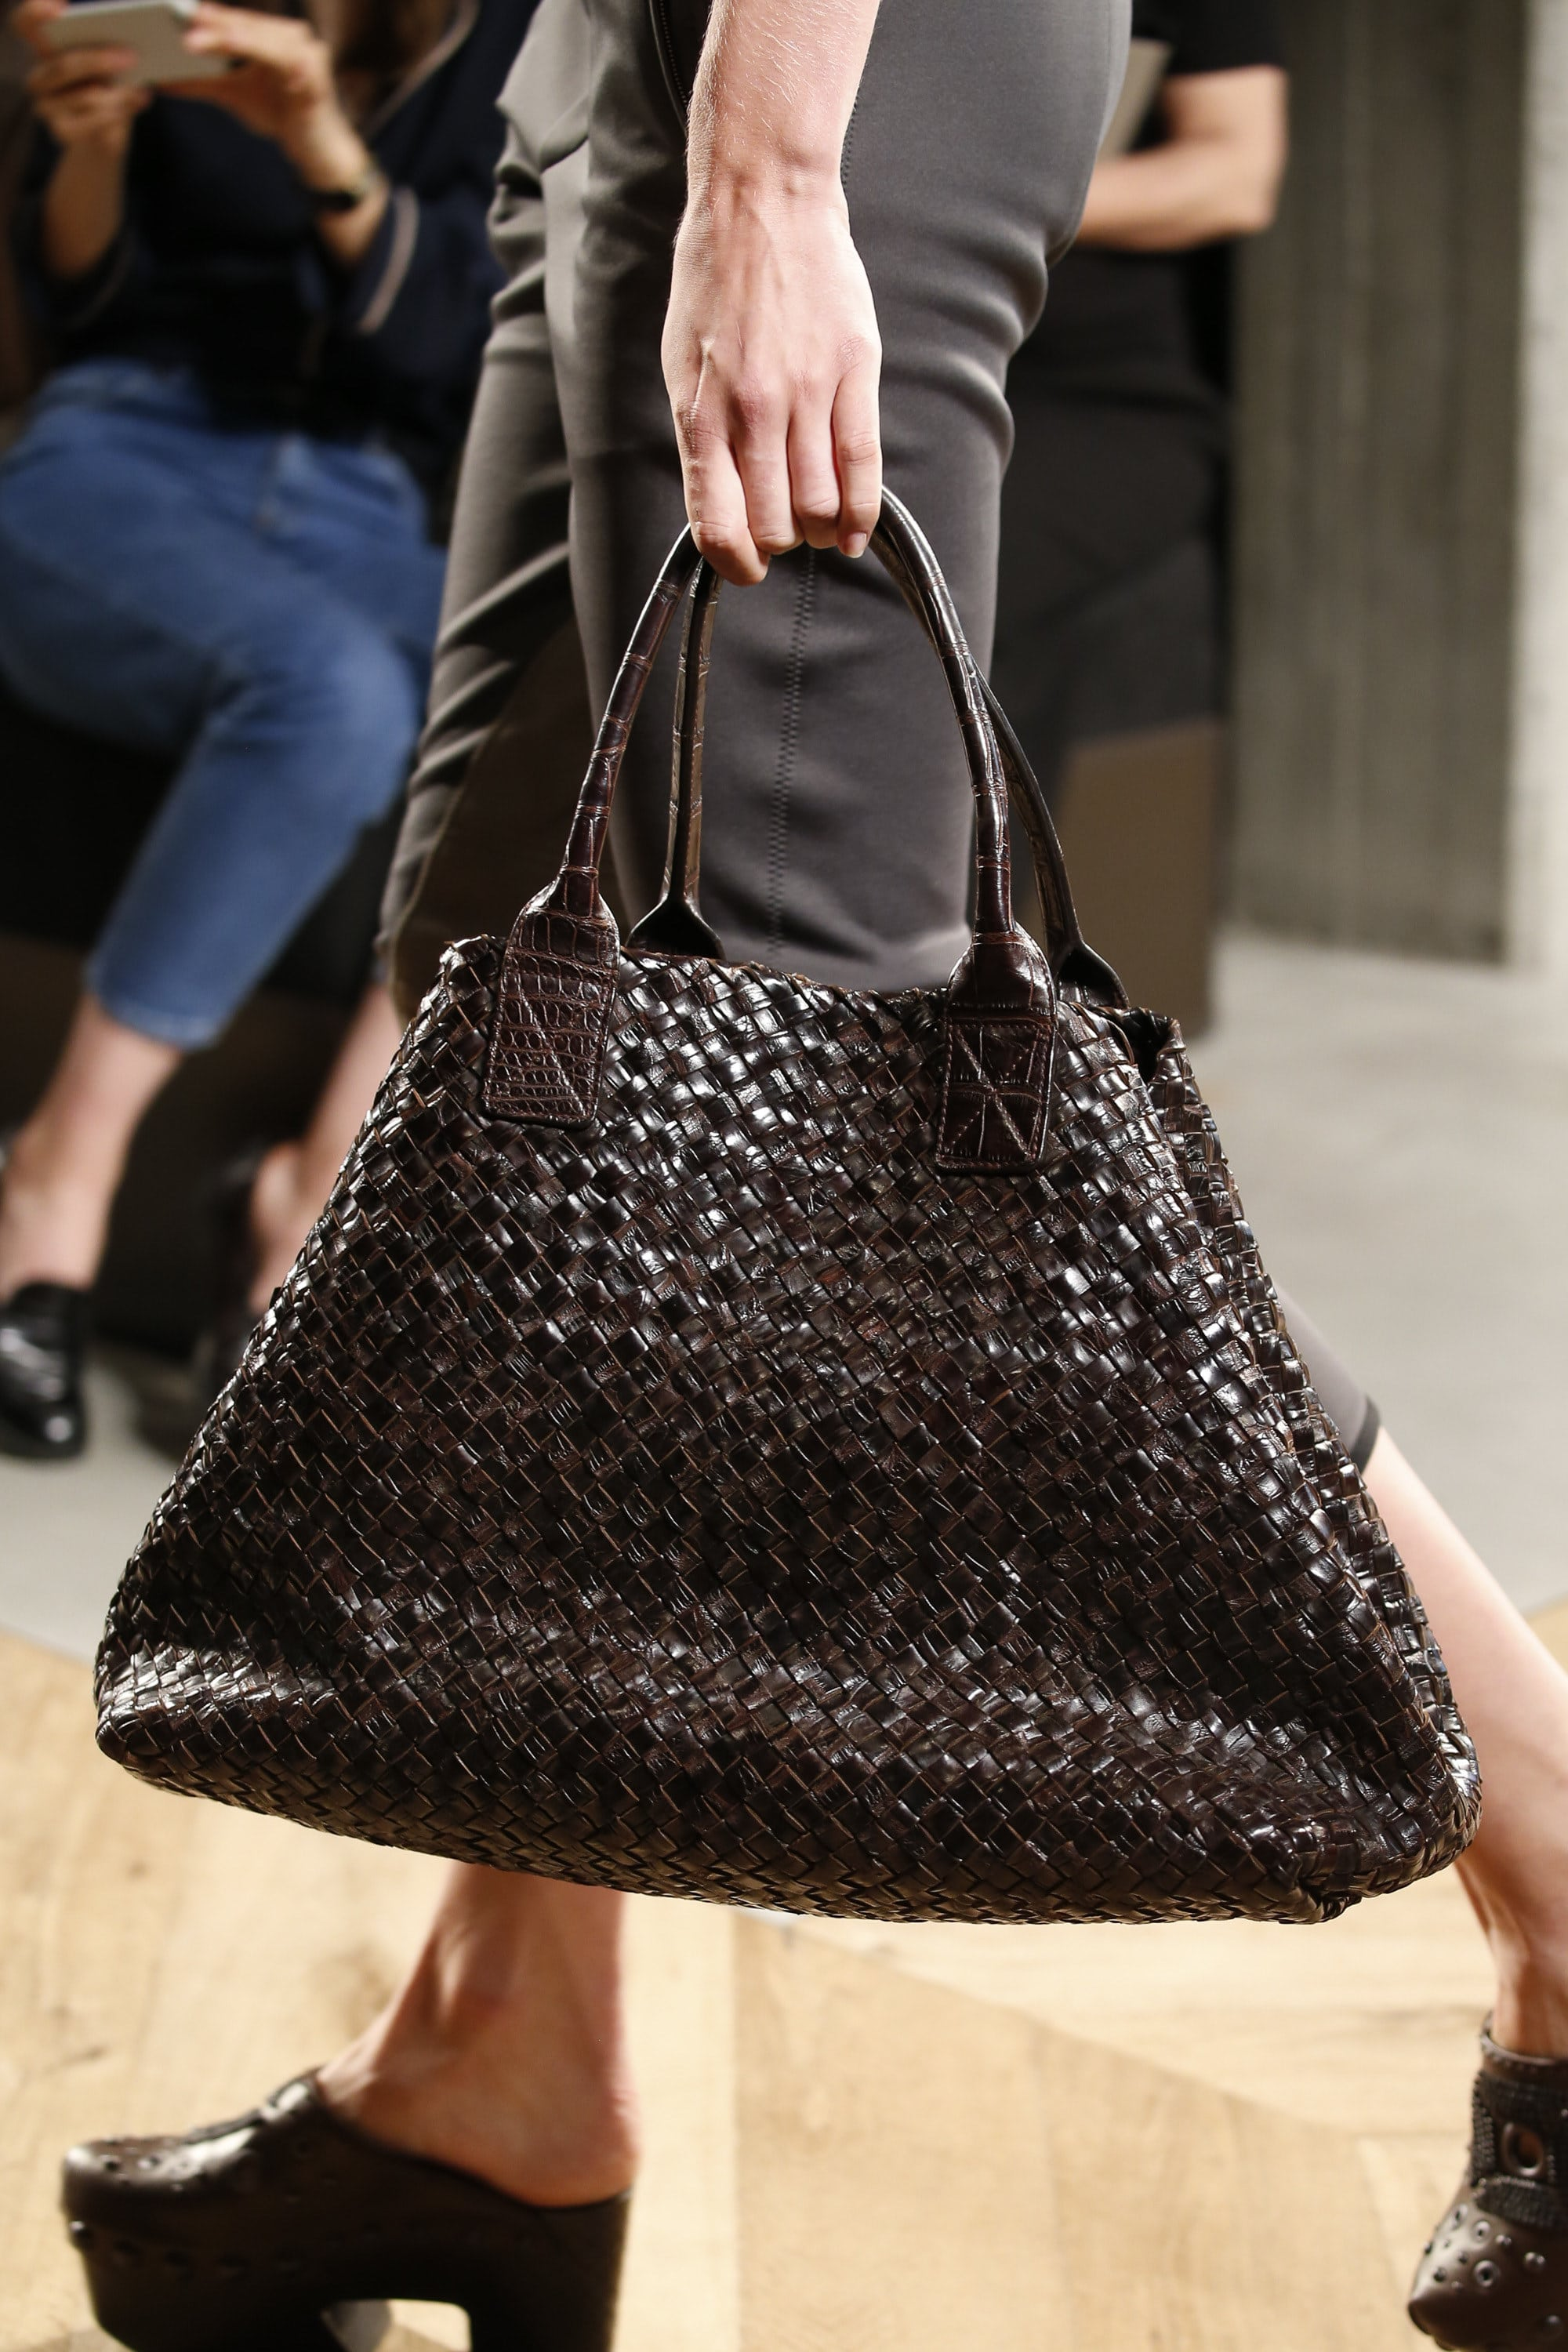 d989ddcead82 Bottega Veneta Spring Summer 2016 Runway Bag Collection